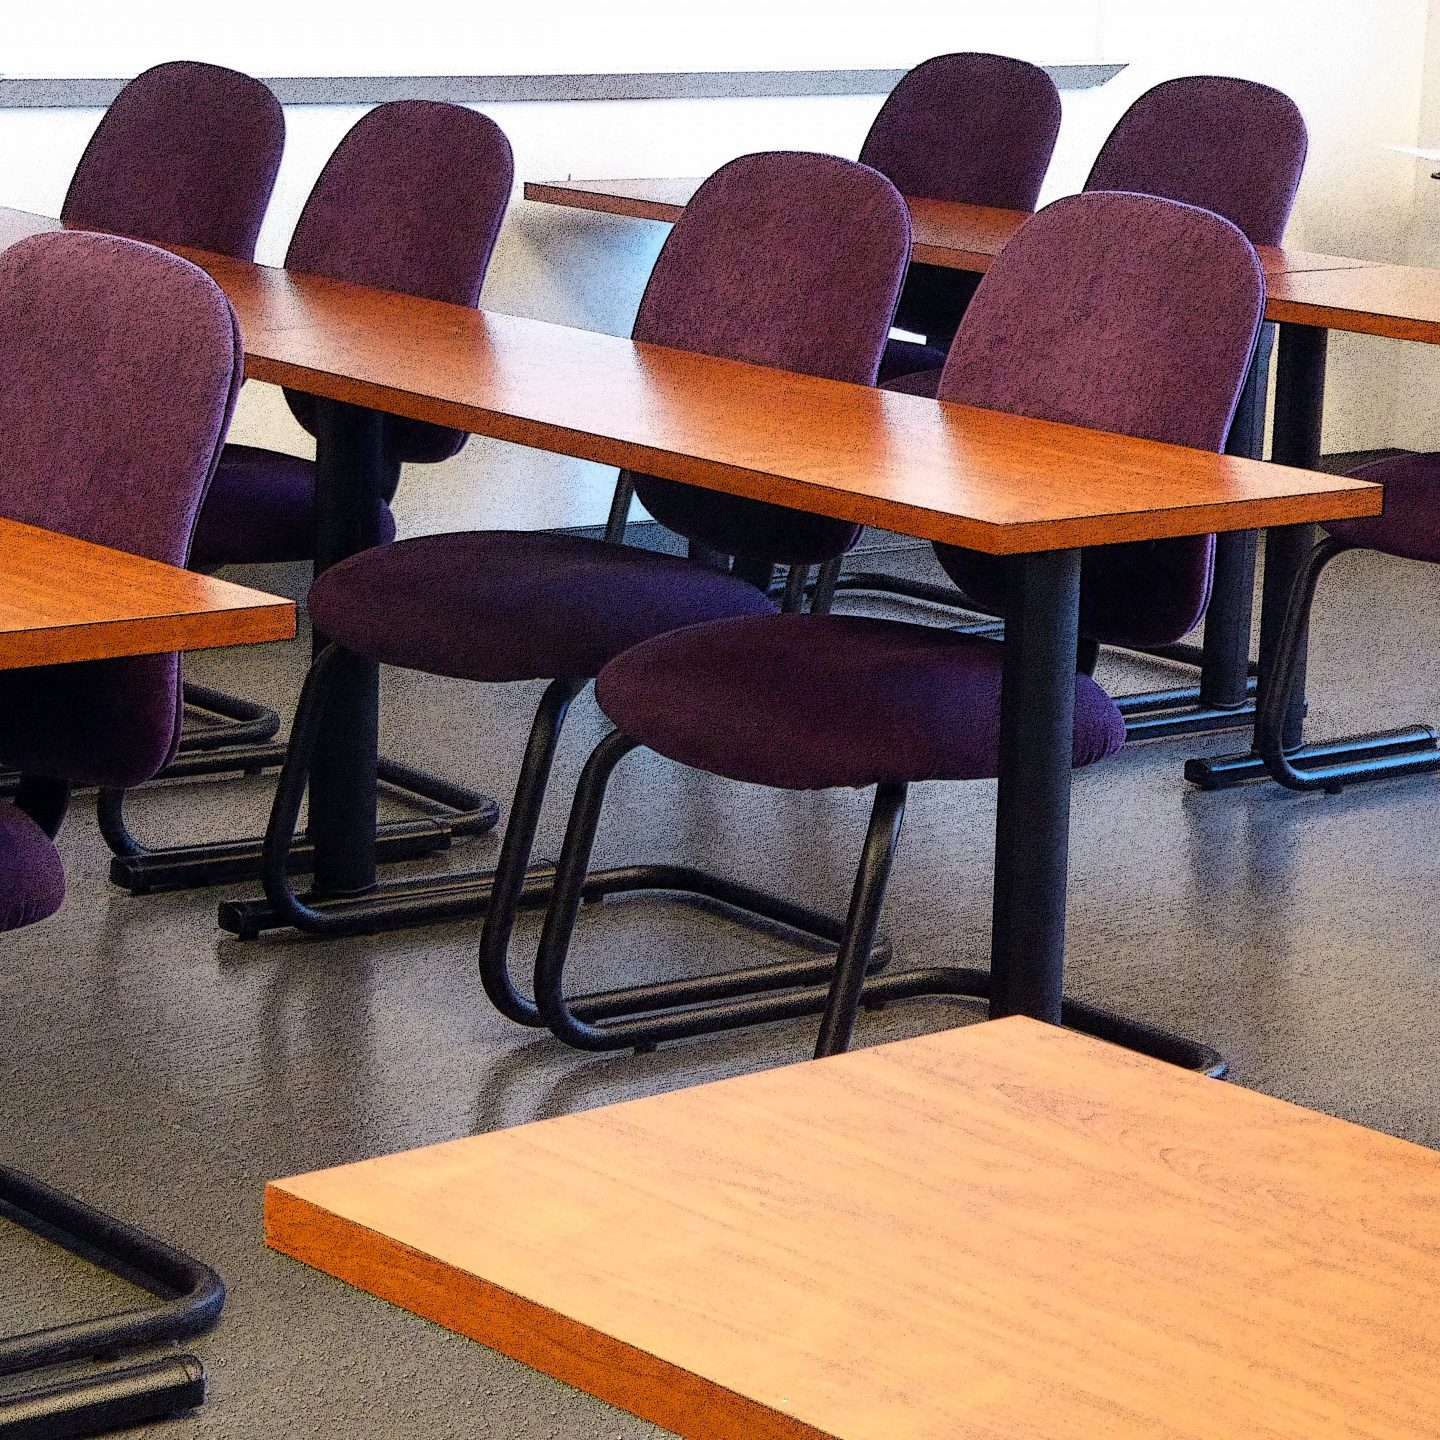 classroom-tables-and-chairs